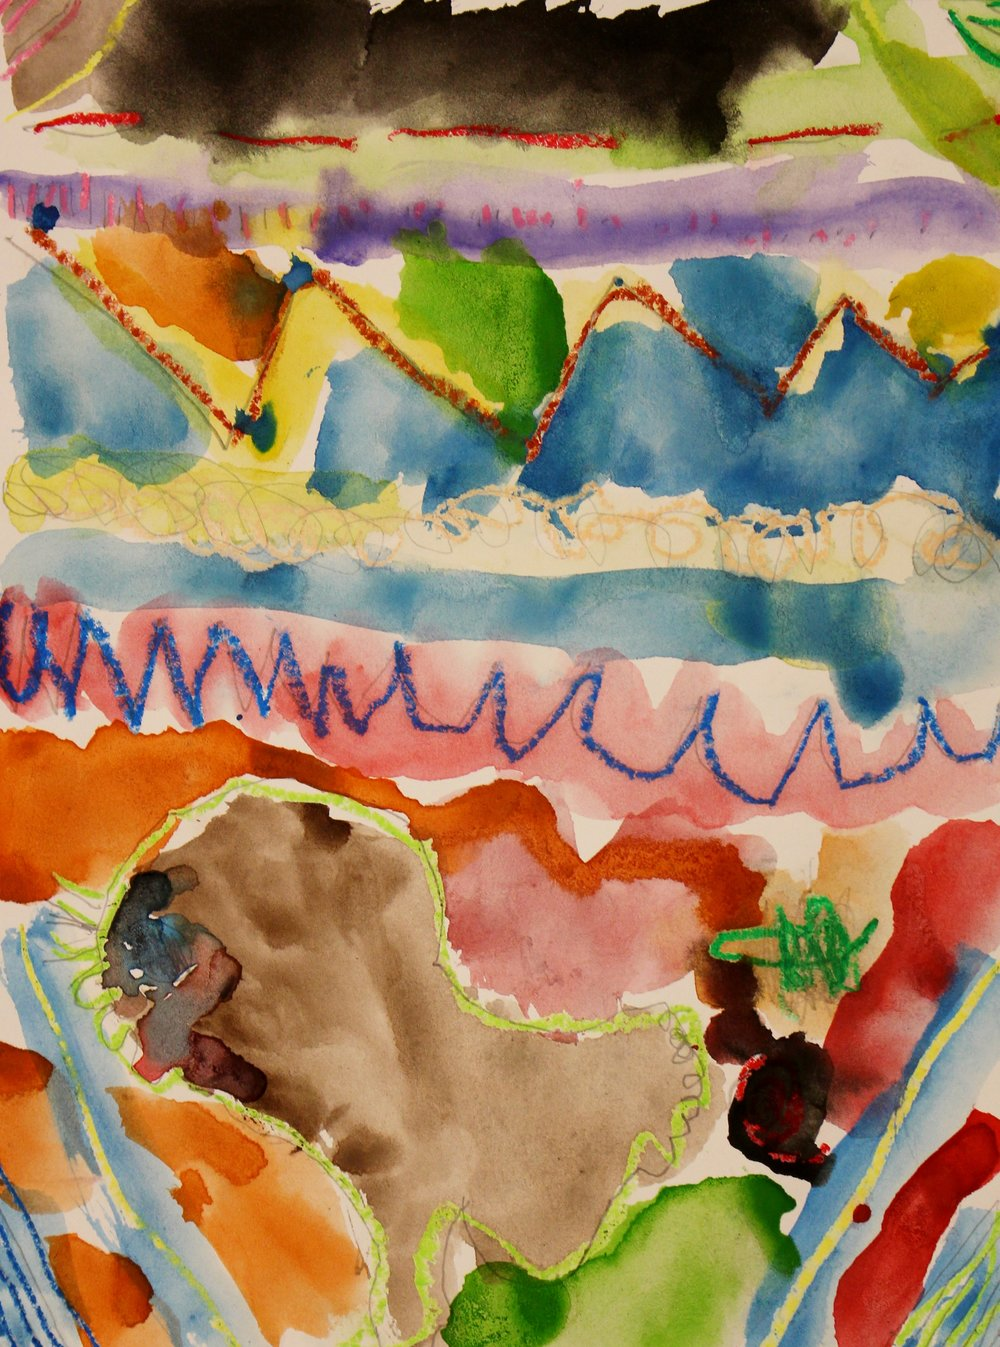 Kindergarten: Riley Smith (Cave art)